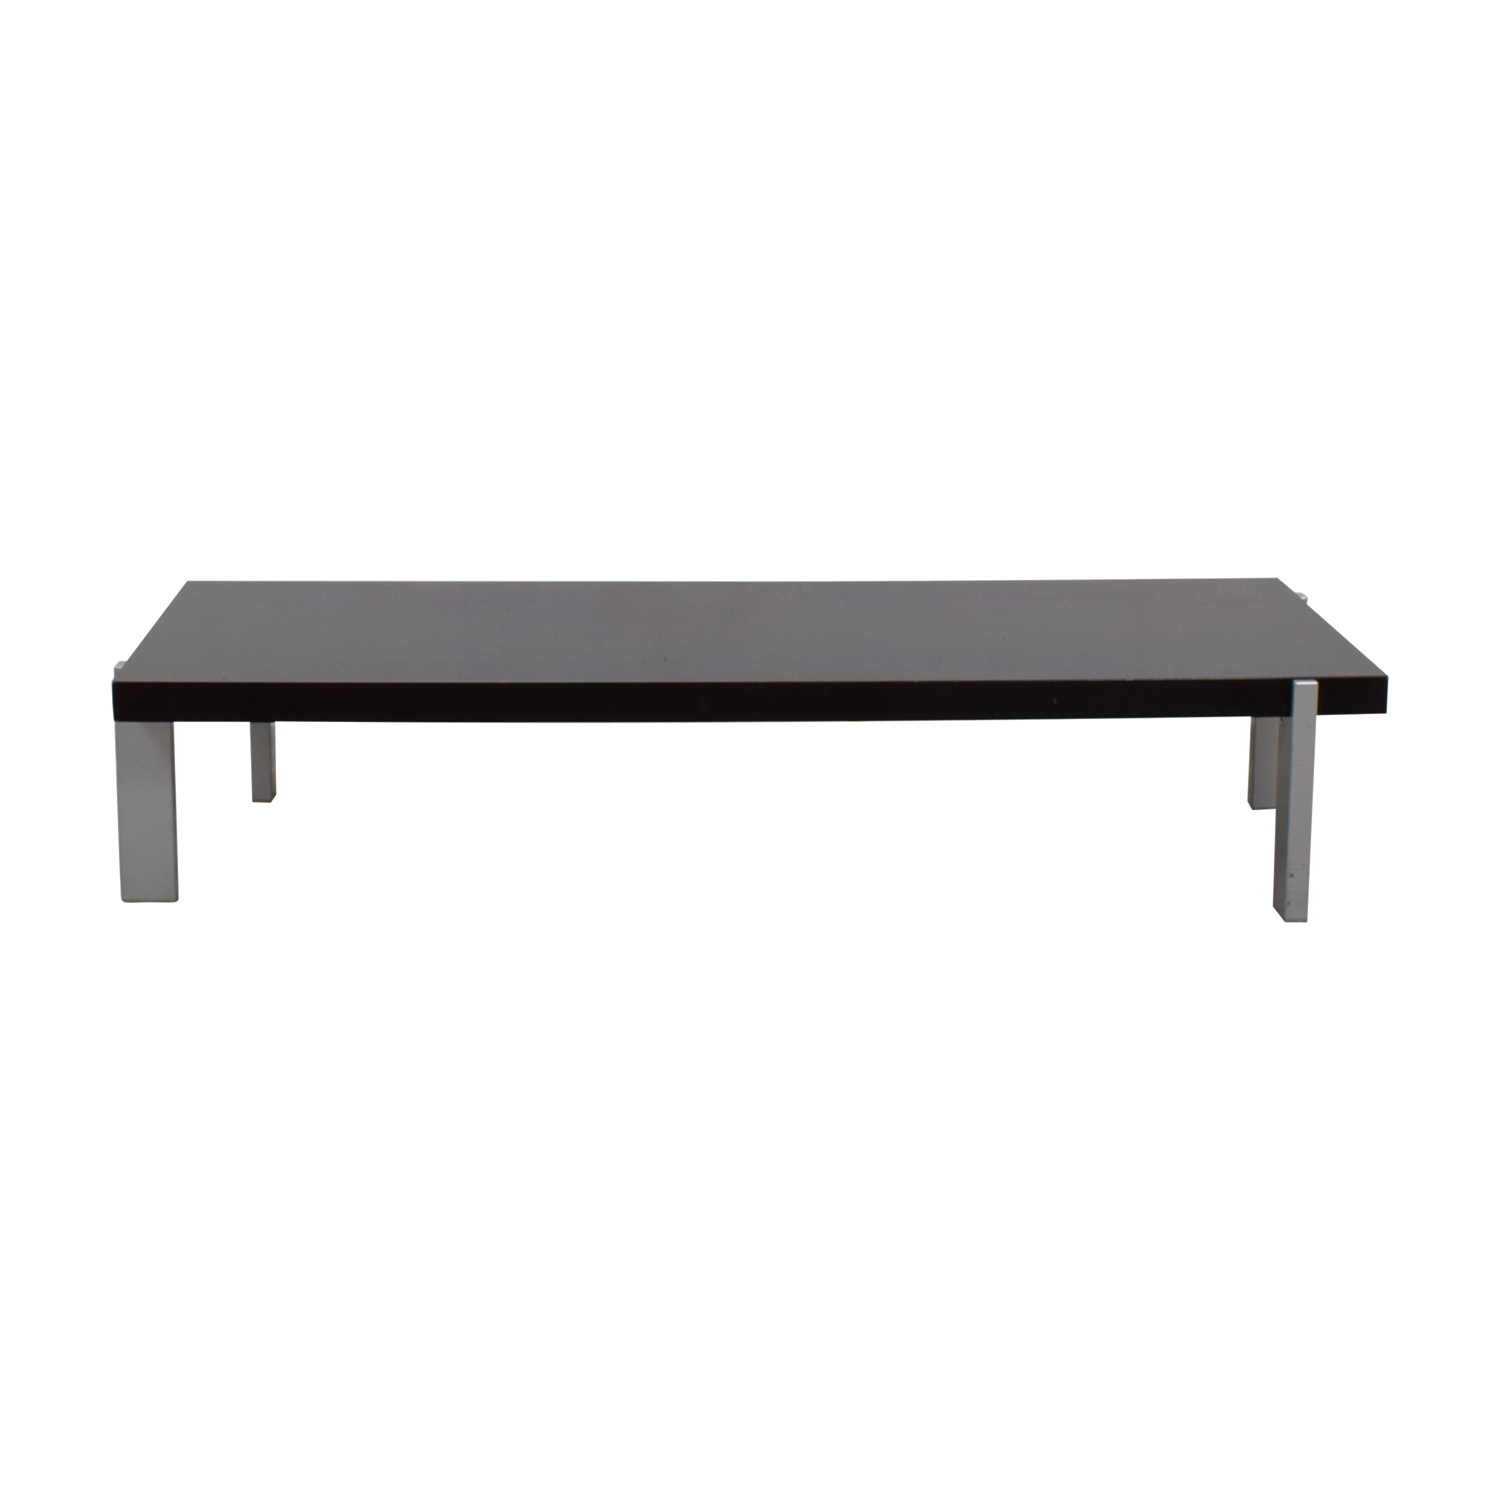 Canadian Custom Modern Coffee Table / Tables